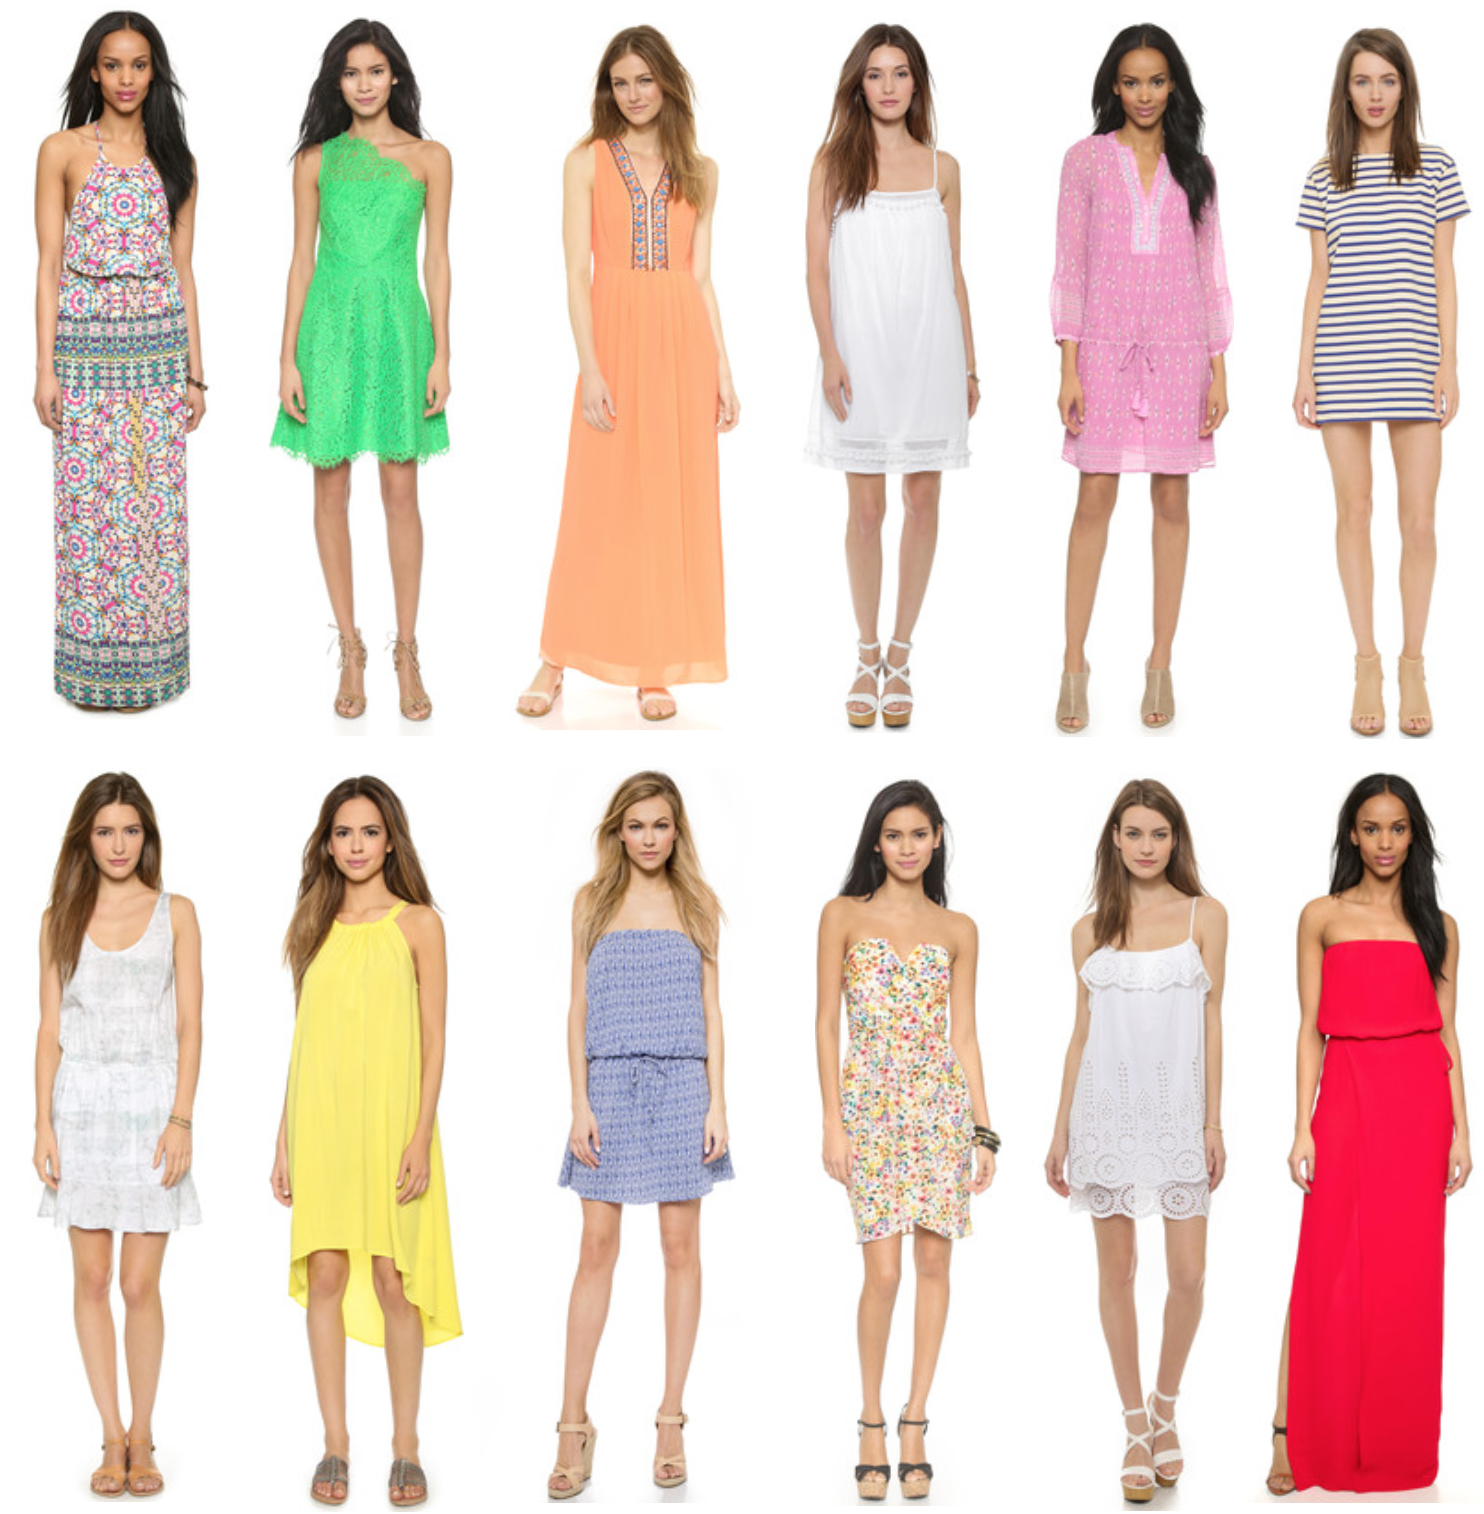 Summer Casual + Shopbop Sale